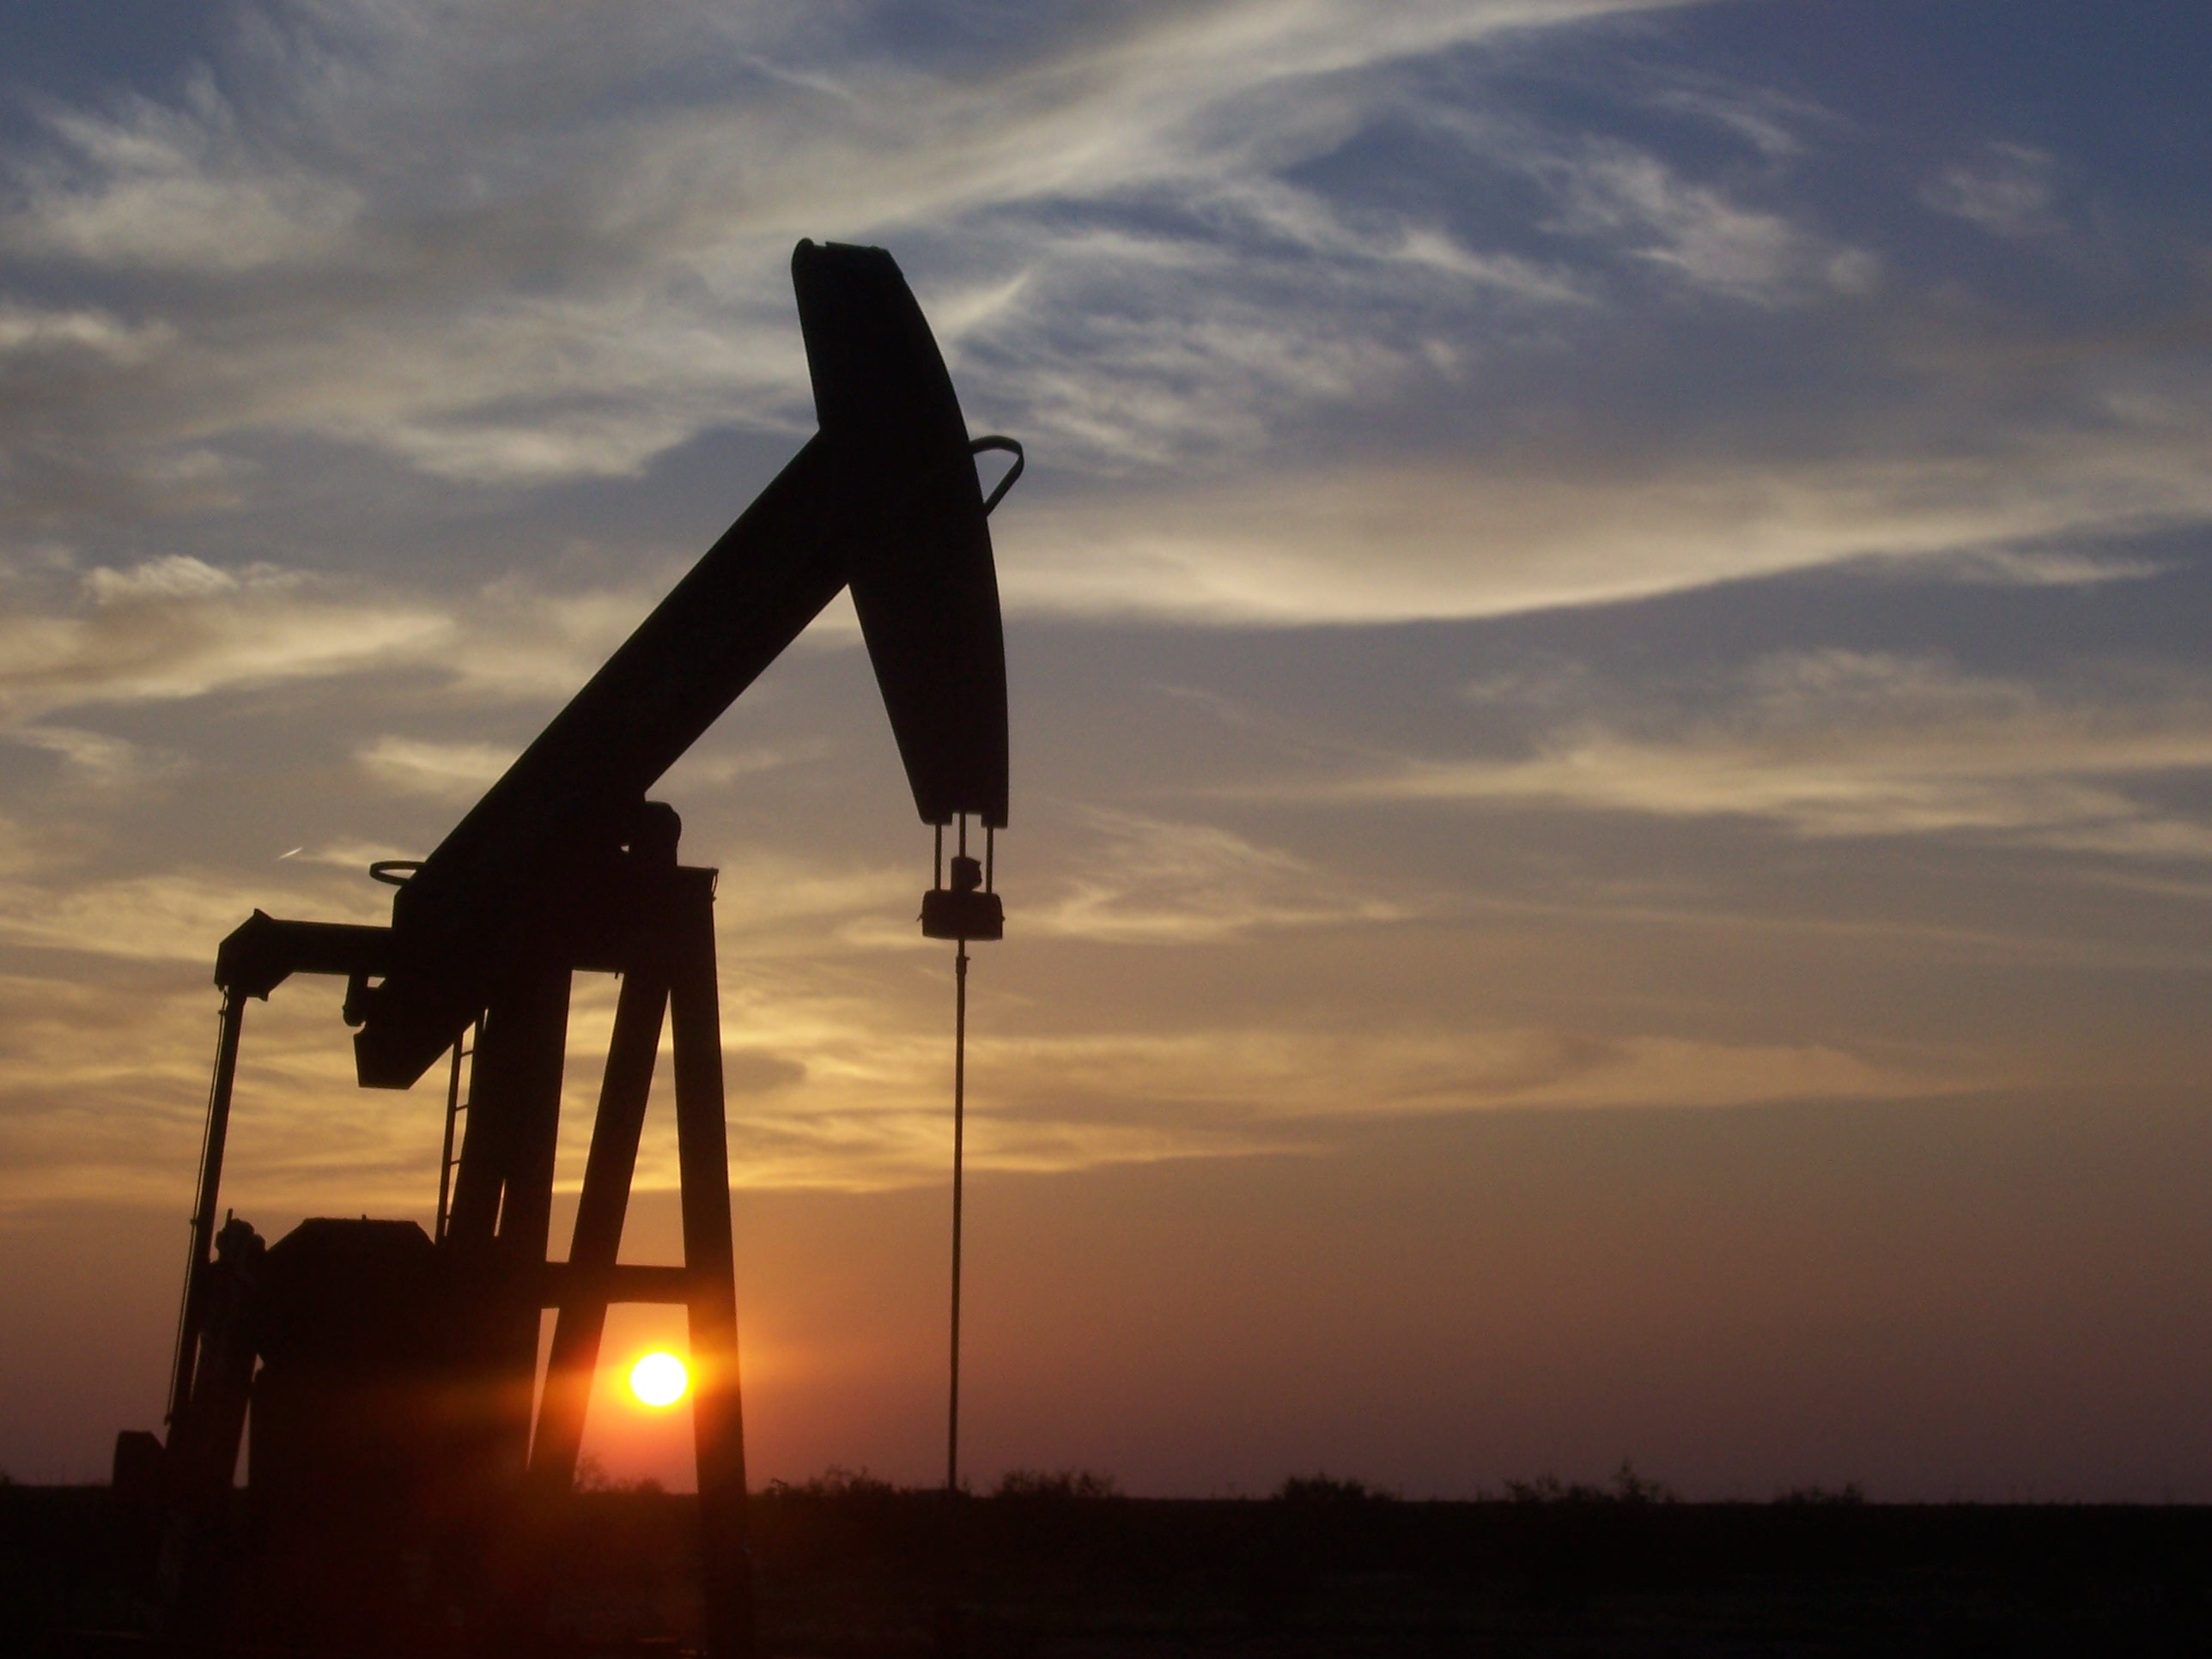 531877-exxonmobil-to-extract-additional-oil-from-west-texas-field.2-lg.jpg